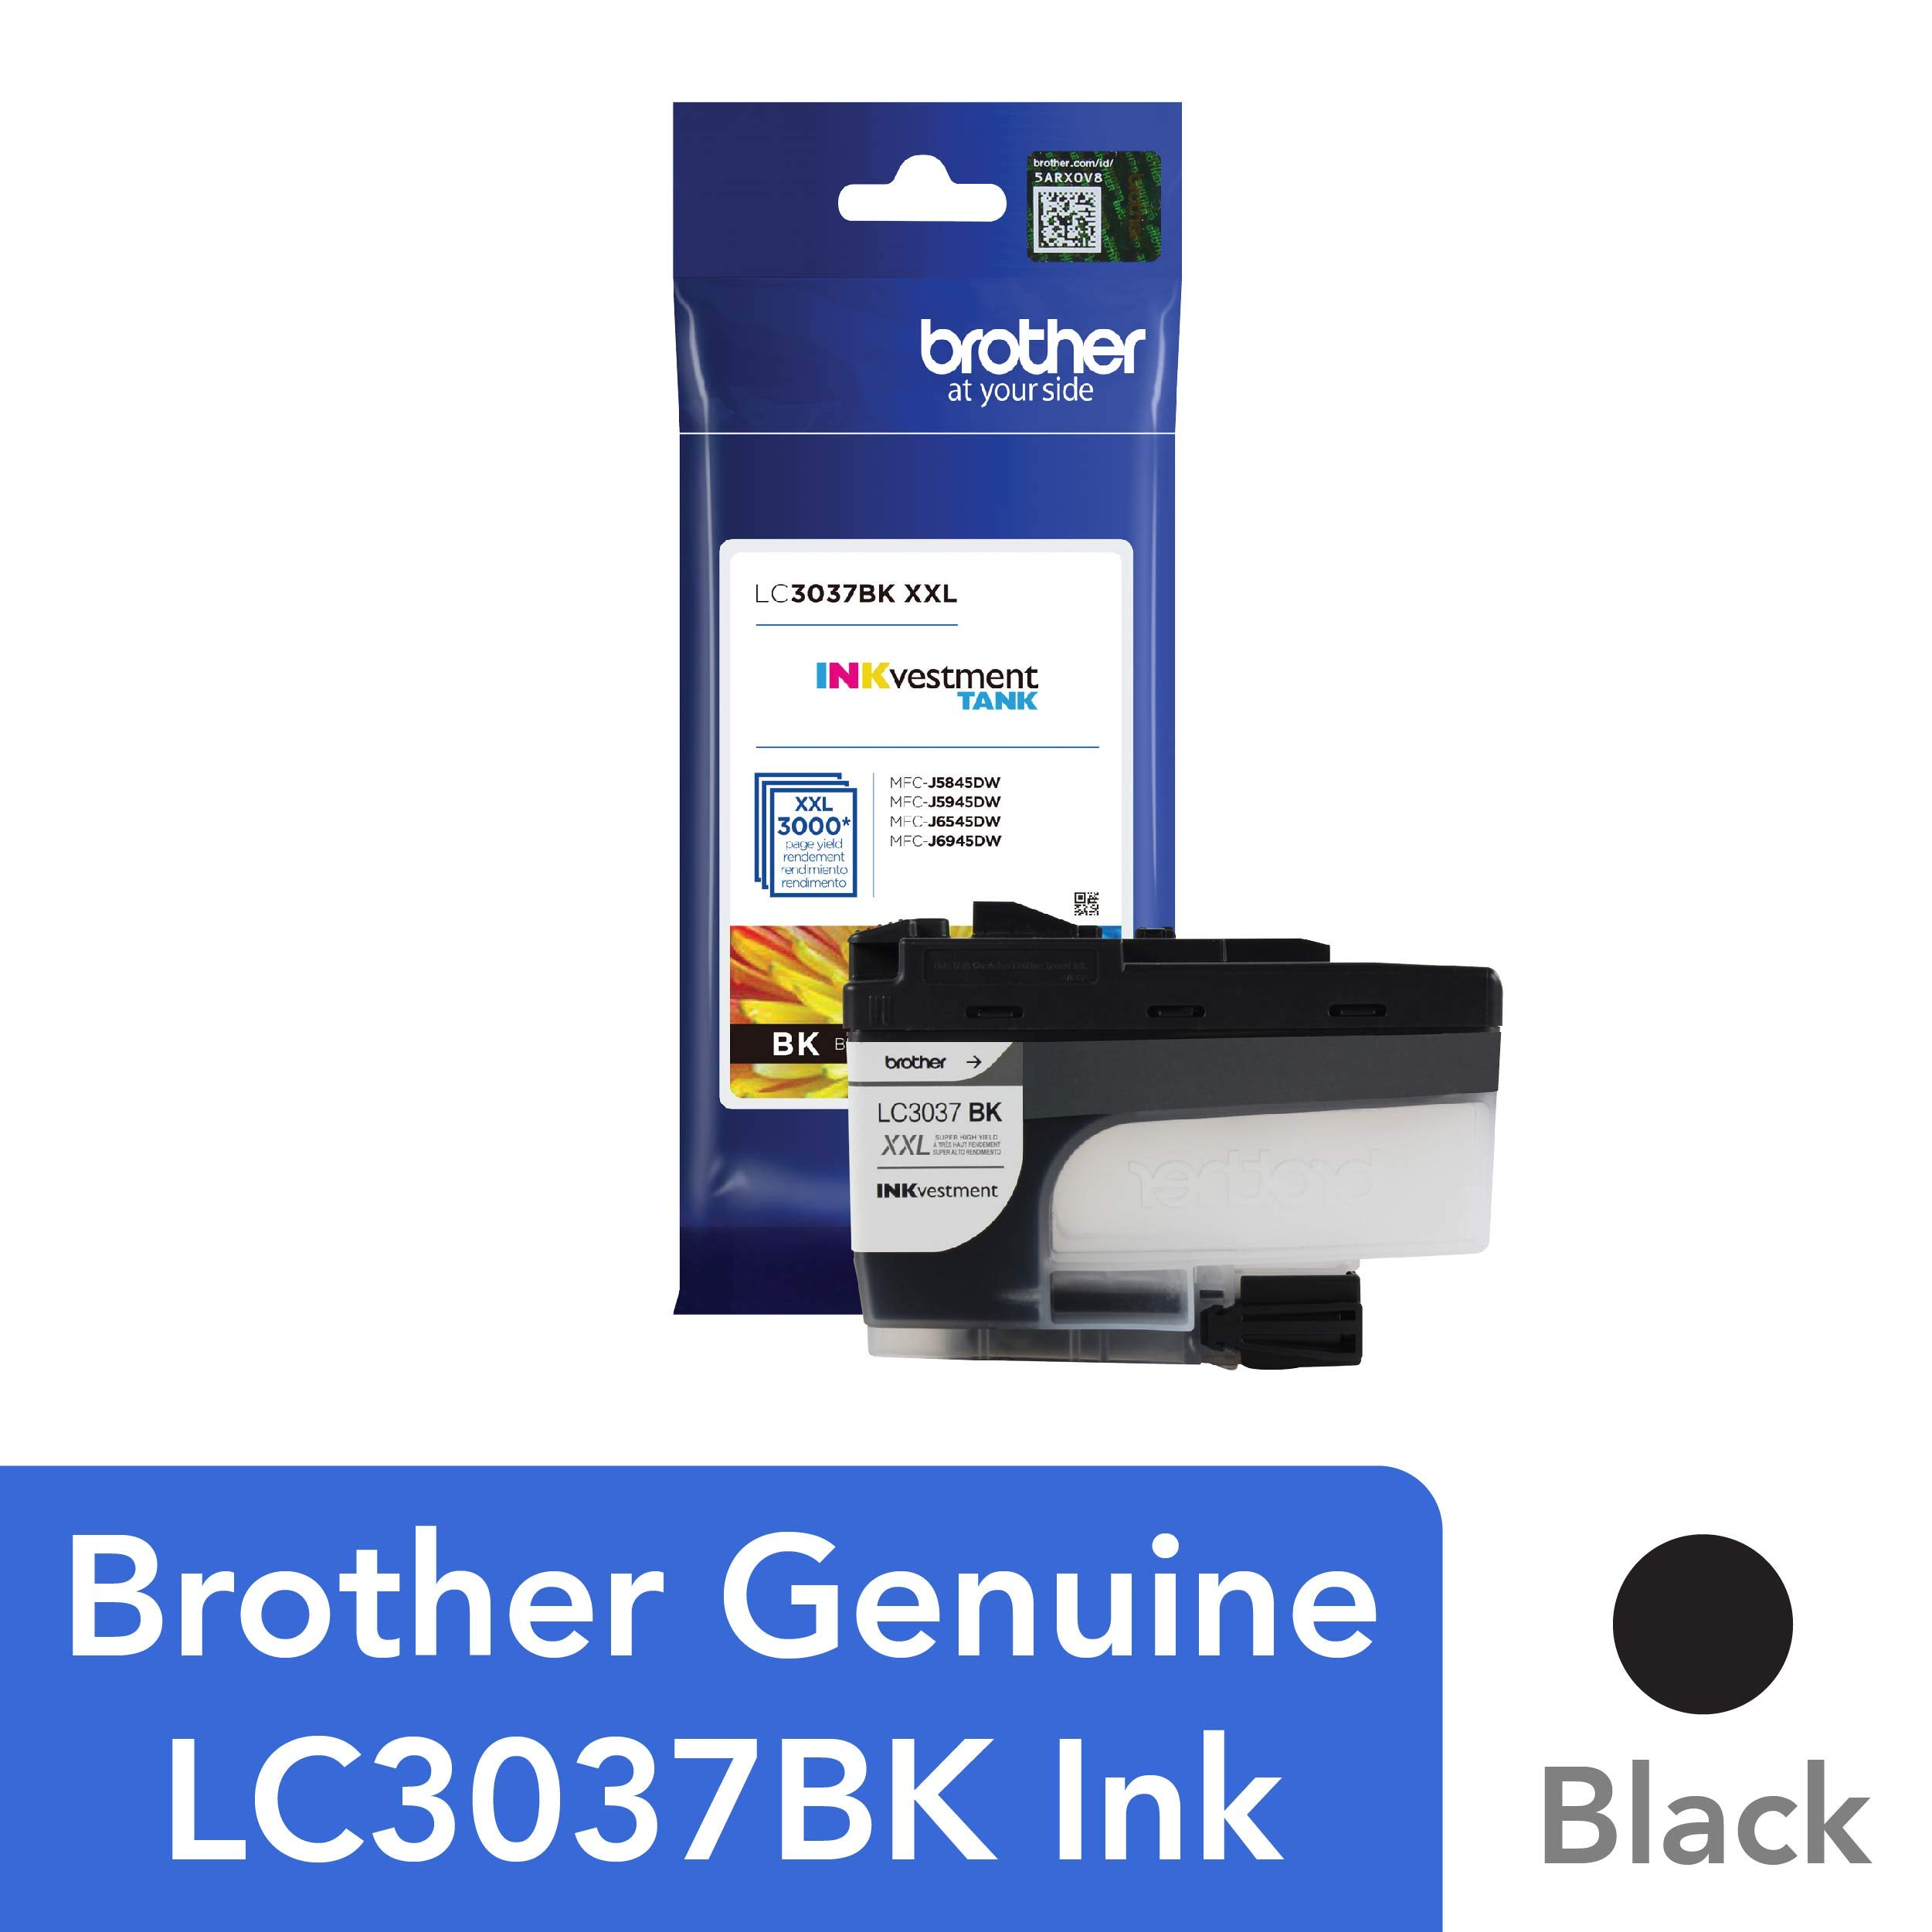 Brother Genuine LC3037BK, Single Pack Super High-Yield Black INKvestment Tank Ink Cartridge, Page Yield Up to 3,000 Pages, LC3037, Amazon Dash Replenishment Cartridge